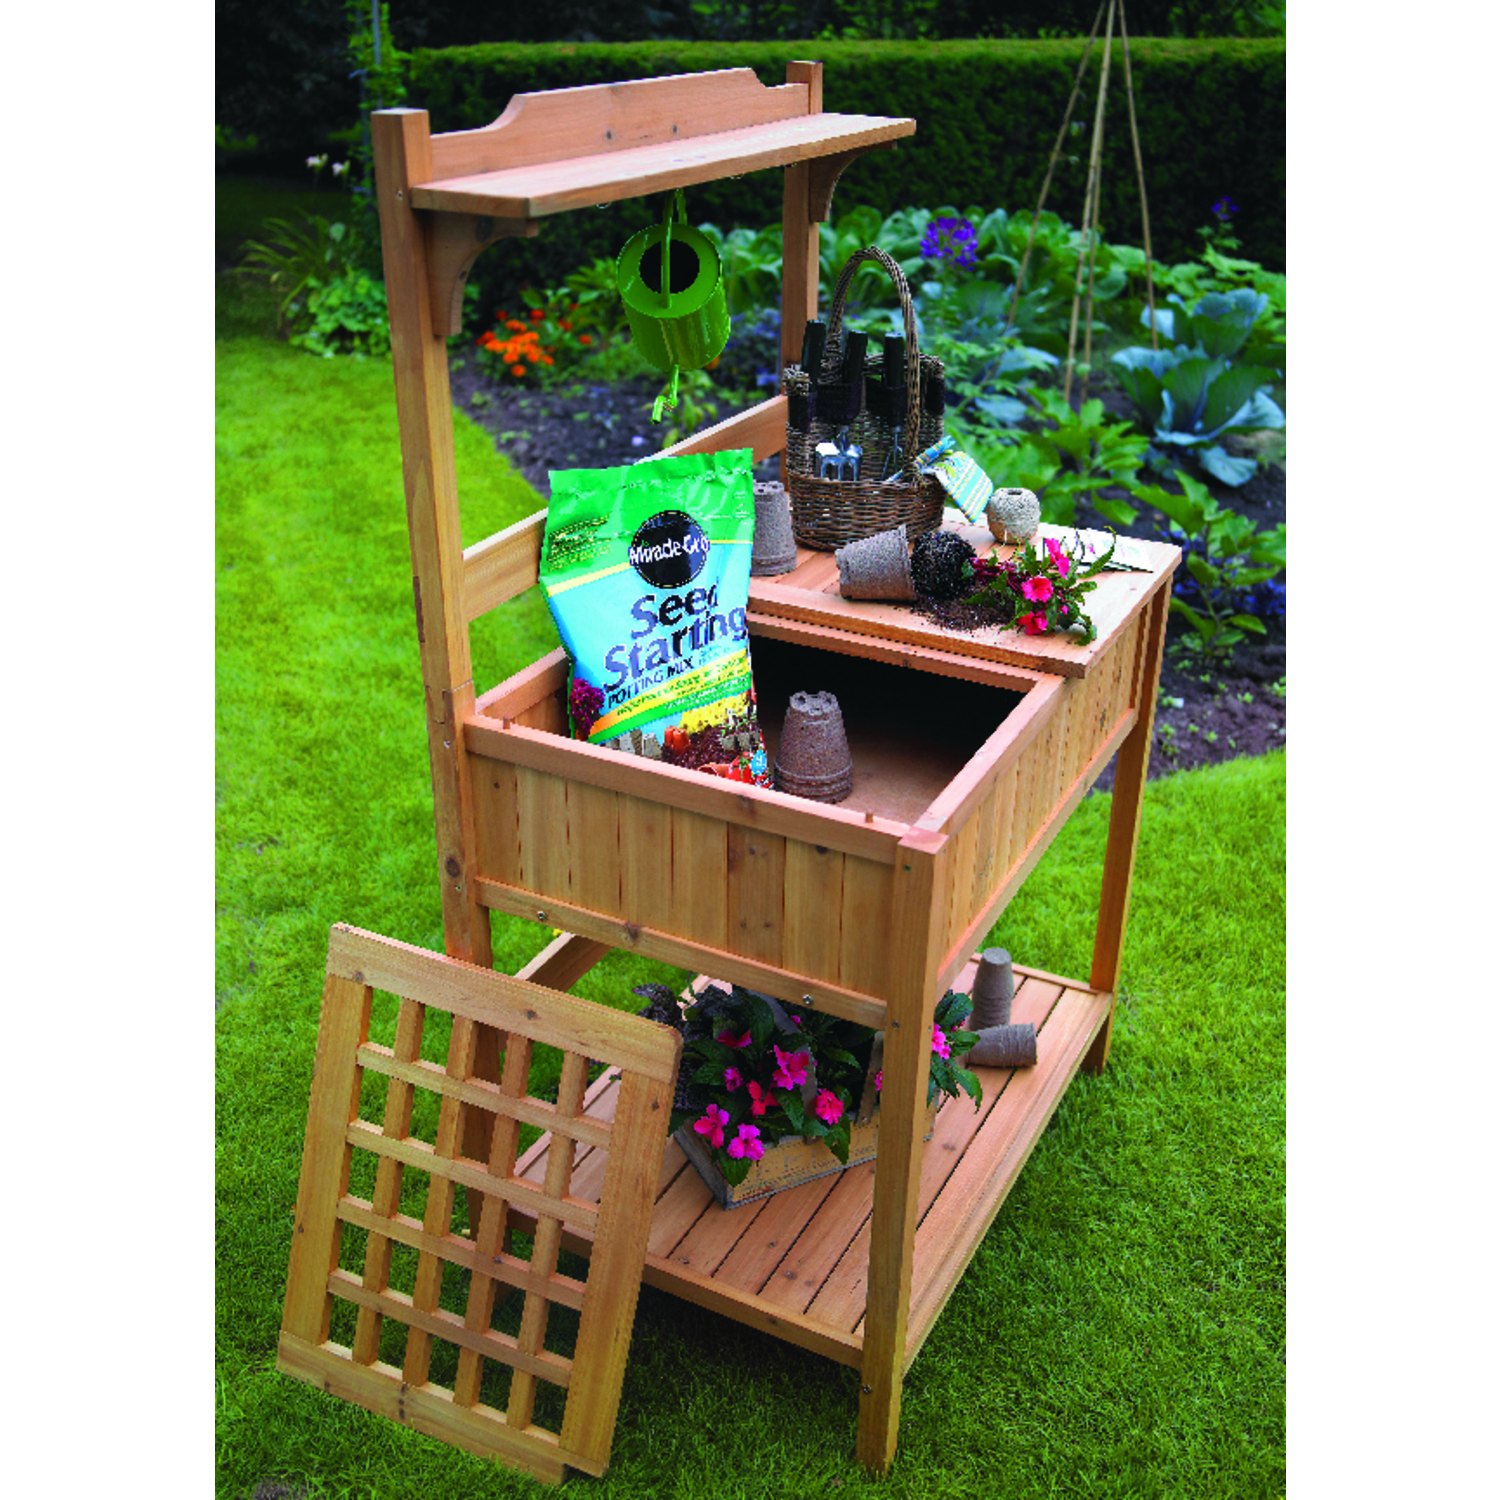 Astonica Bamboo Potting Bench Wood 59.8 In. H X 23.6 In. D X 35.8